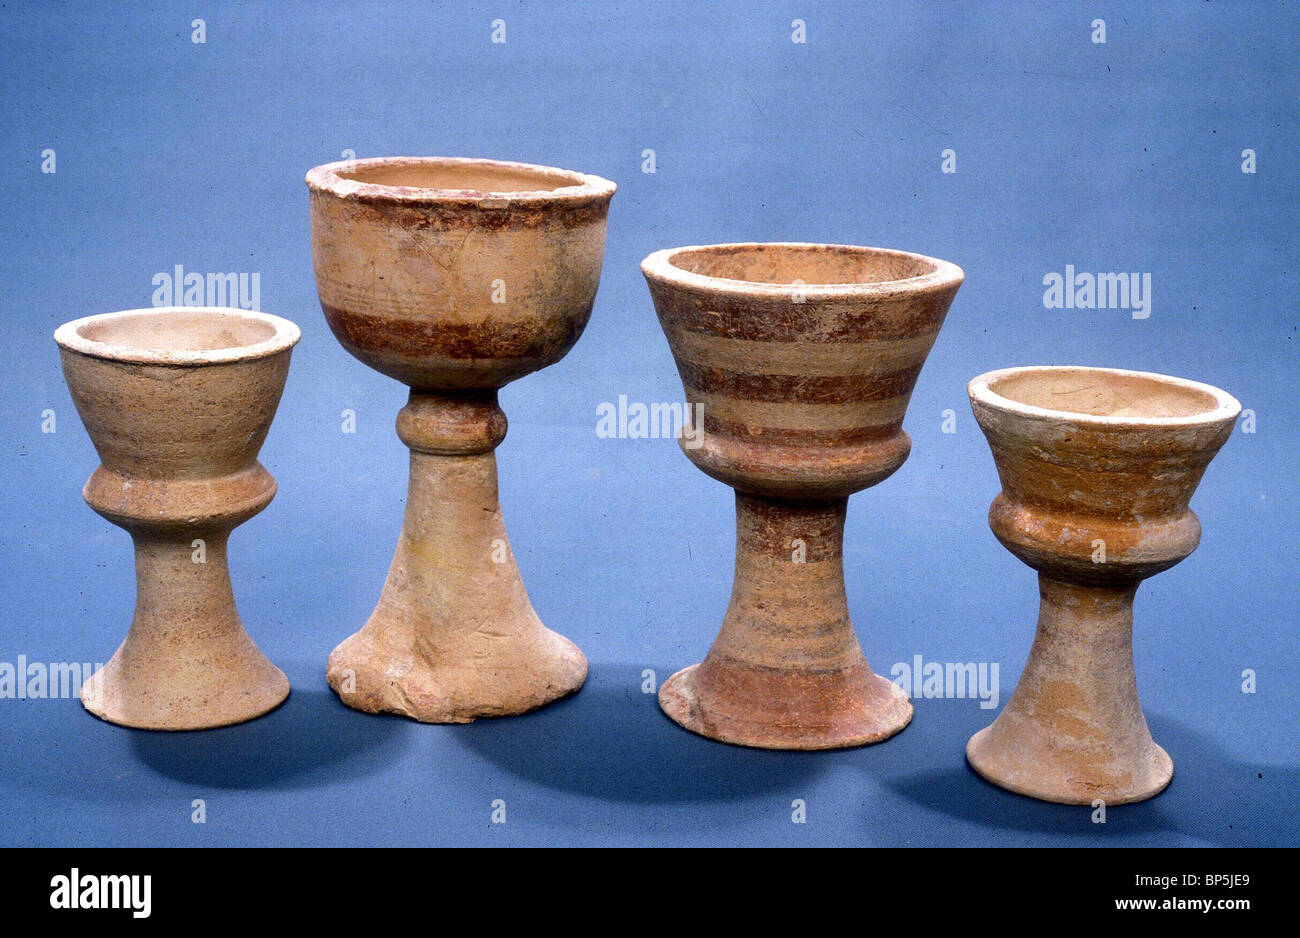 3811. CNAANITE CULT VESSELS, C.12-10TH. C. BC - Stock Image